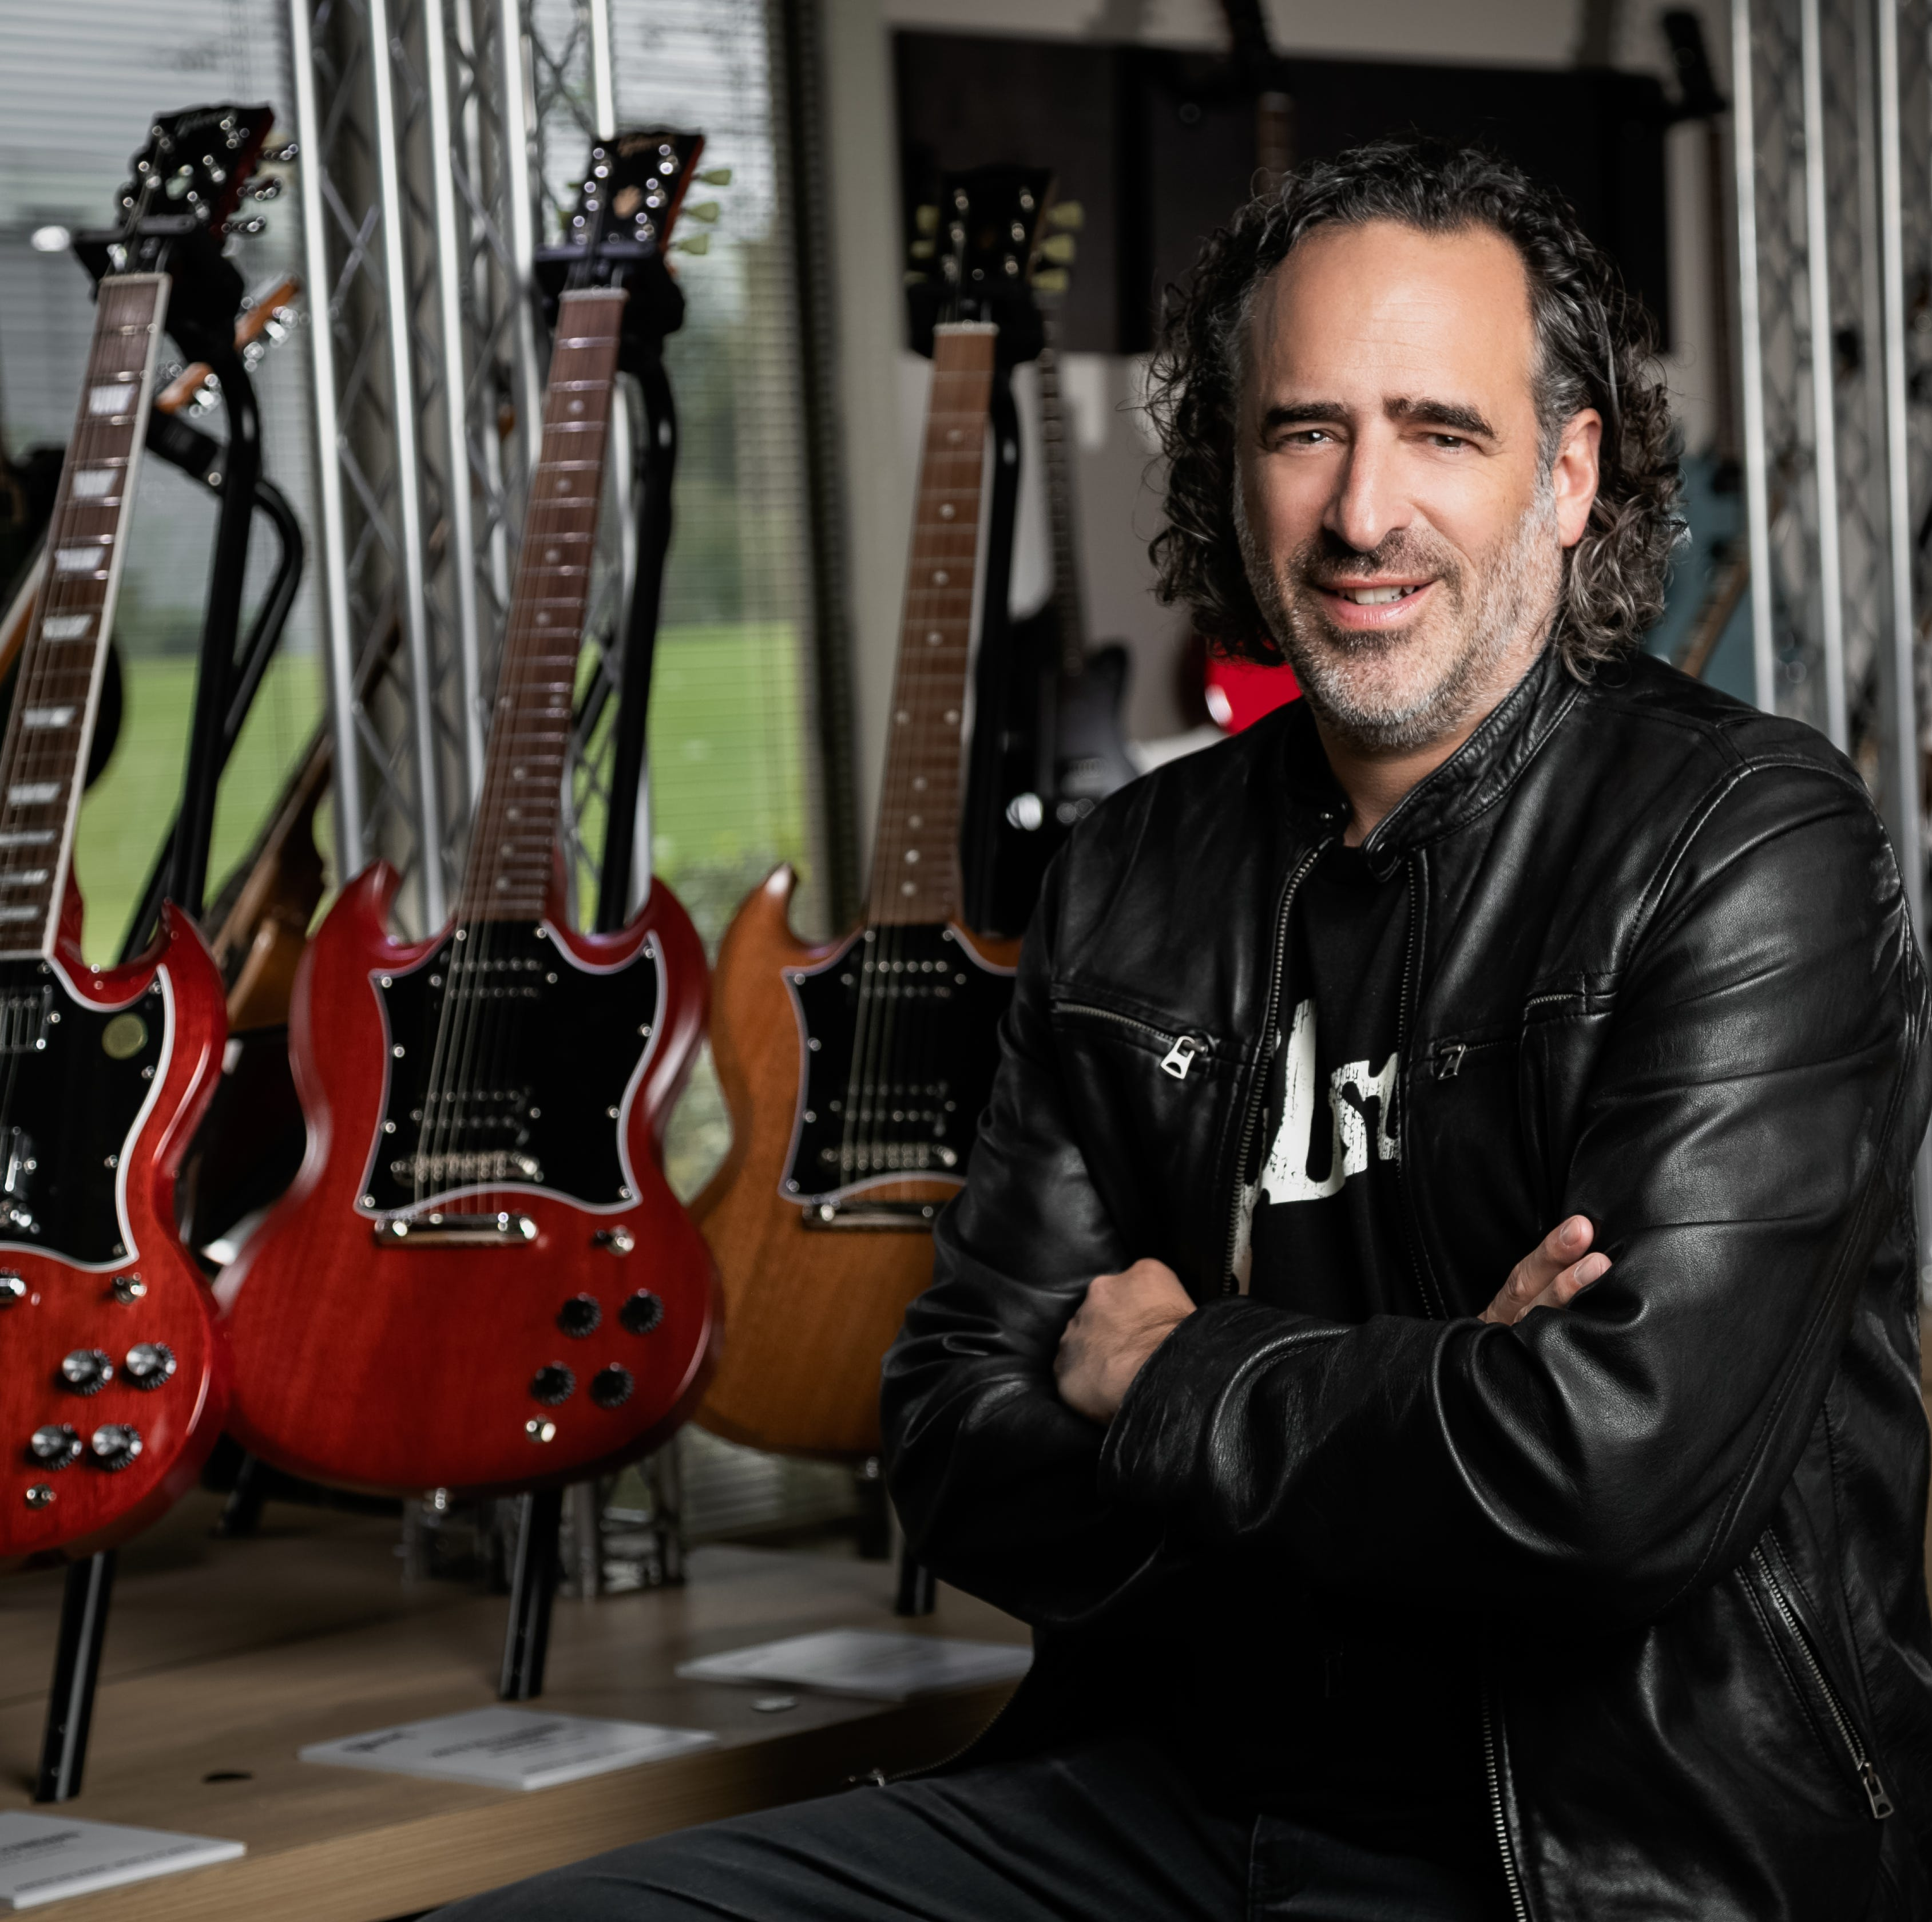 Gibson taps JC Curleigh as CEO to lead iconic guitar company out of bankruptcy